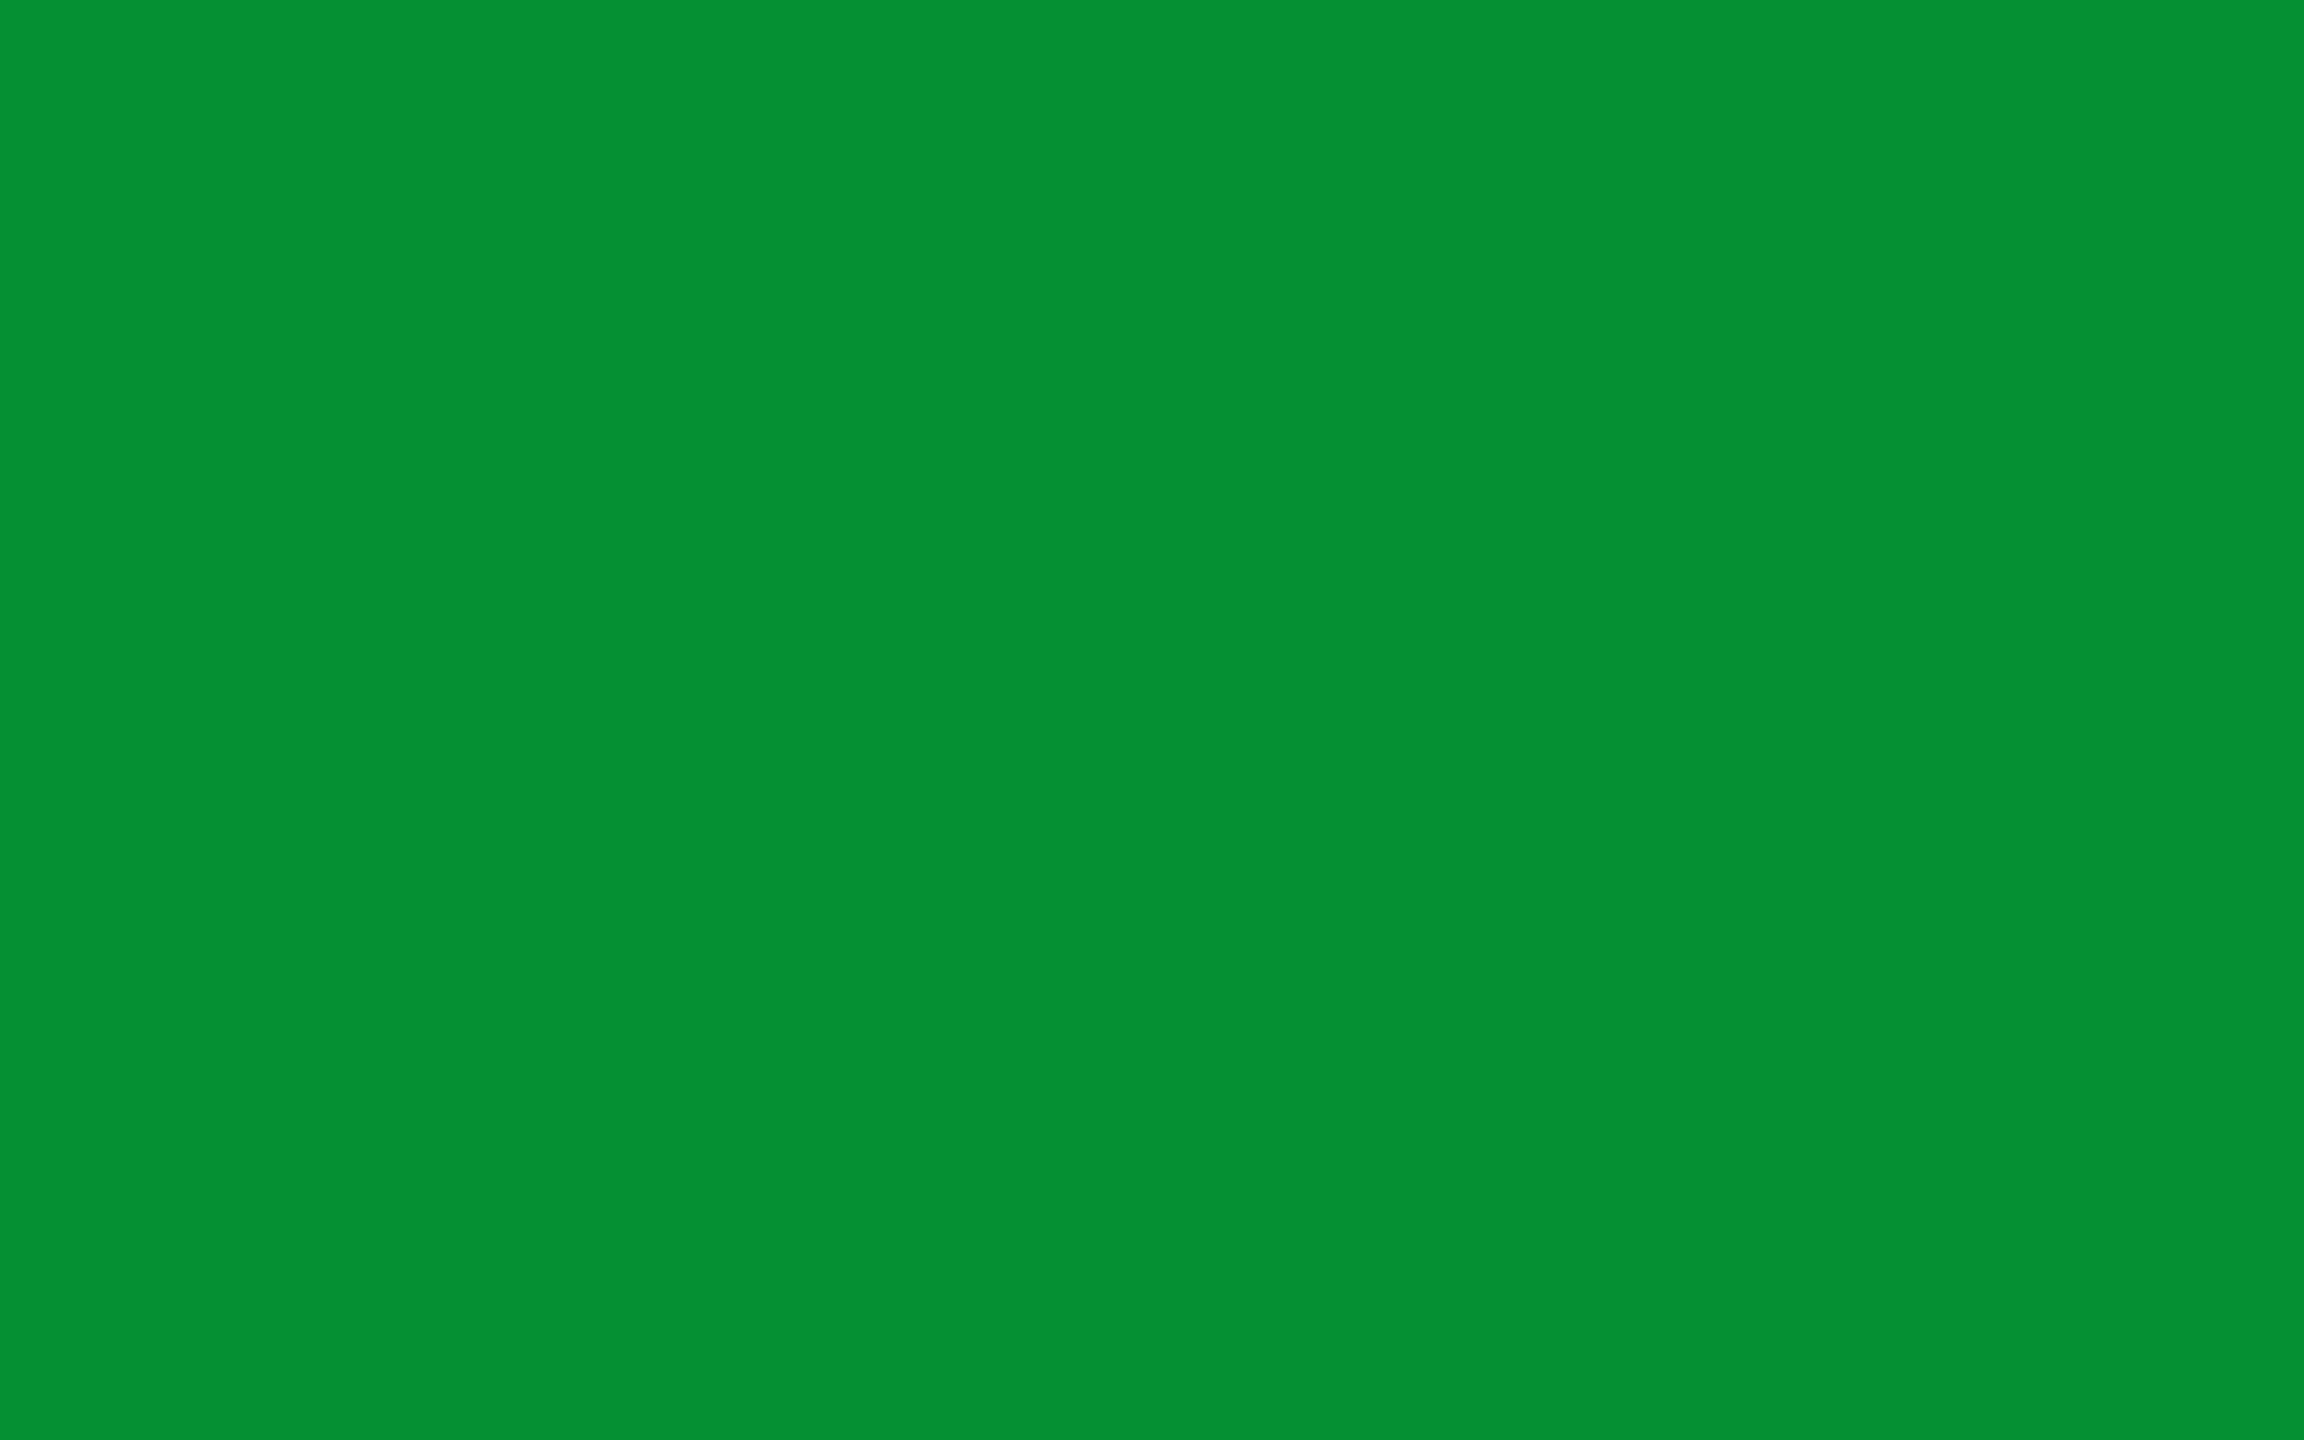 2304x1440 North Texas Green Solid Color Background